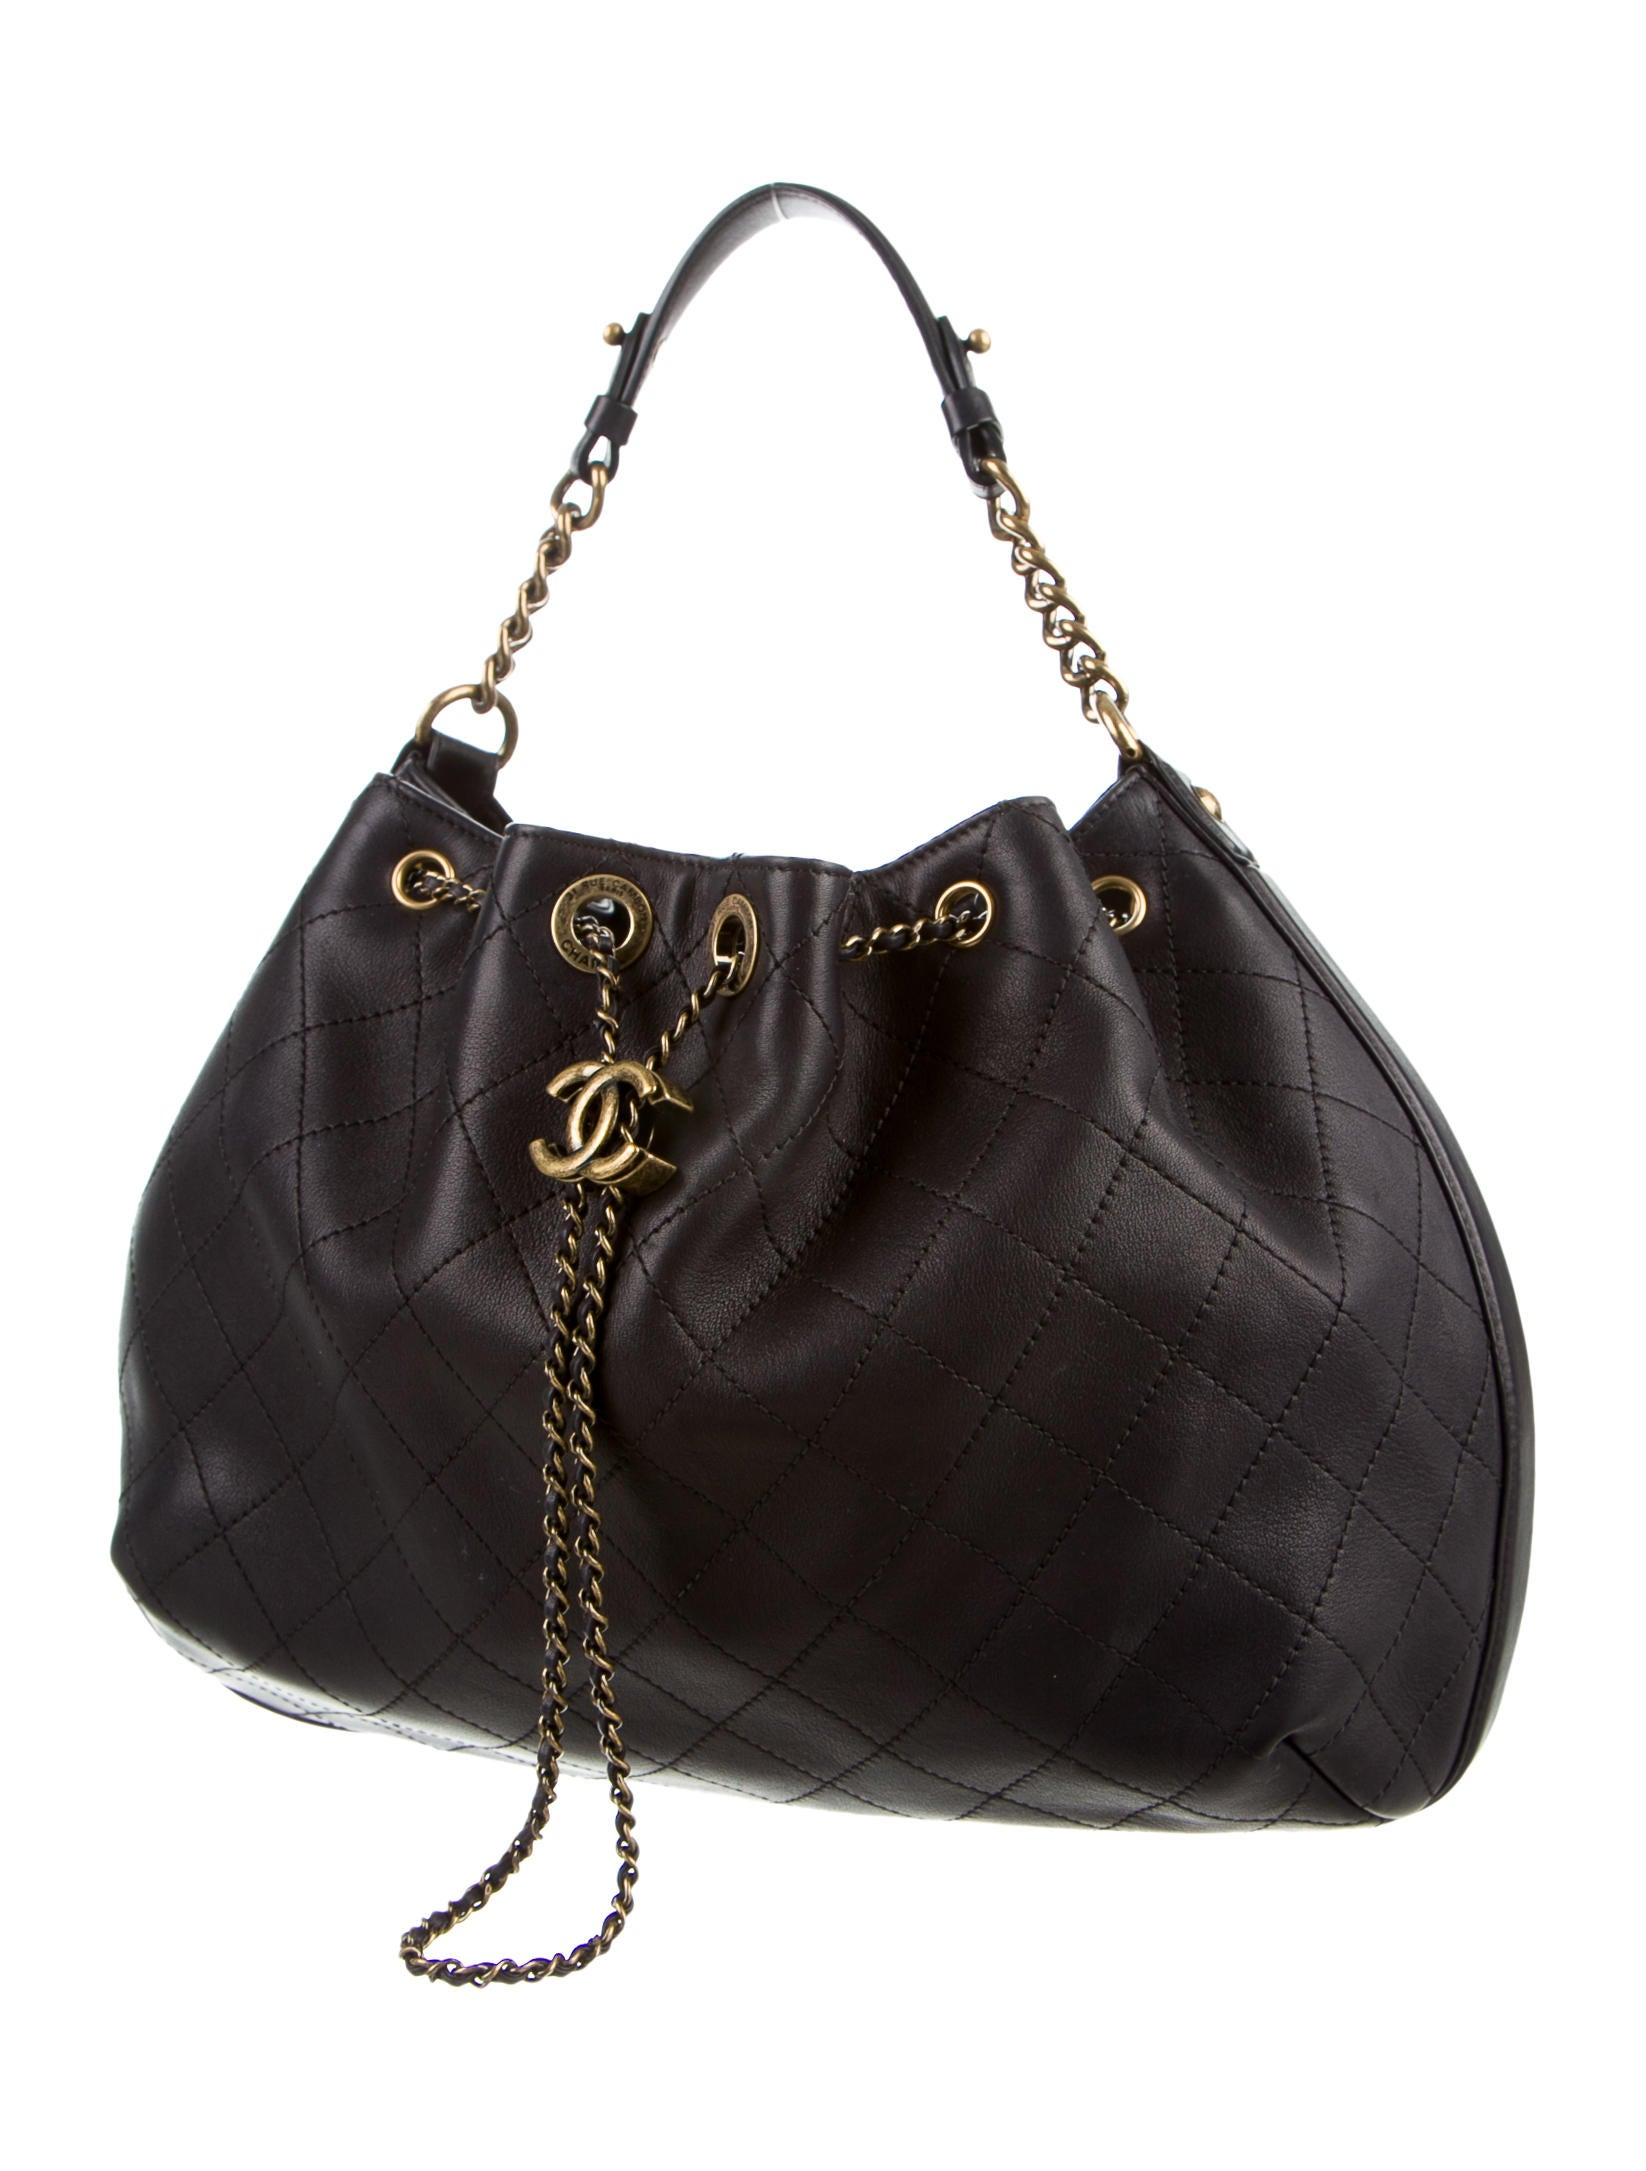 Chanel 2016 Paris-Rome Drawstring Bag